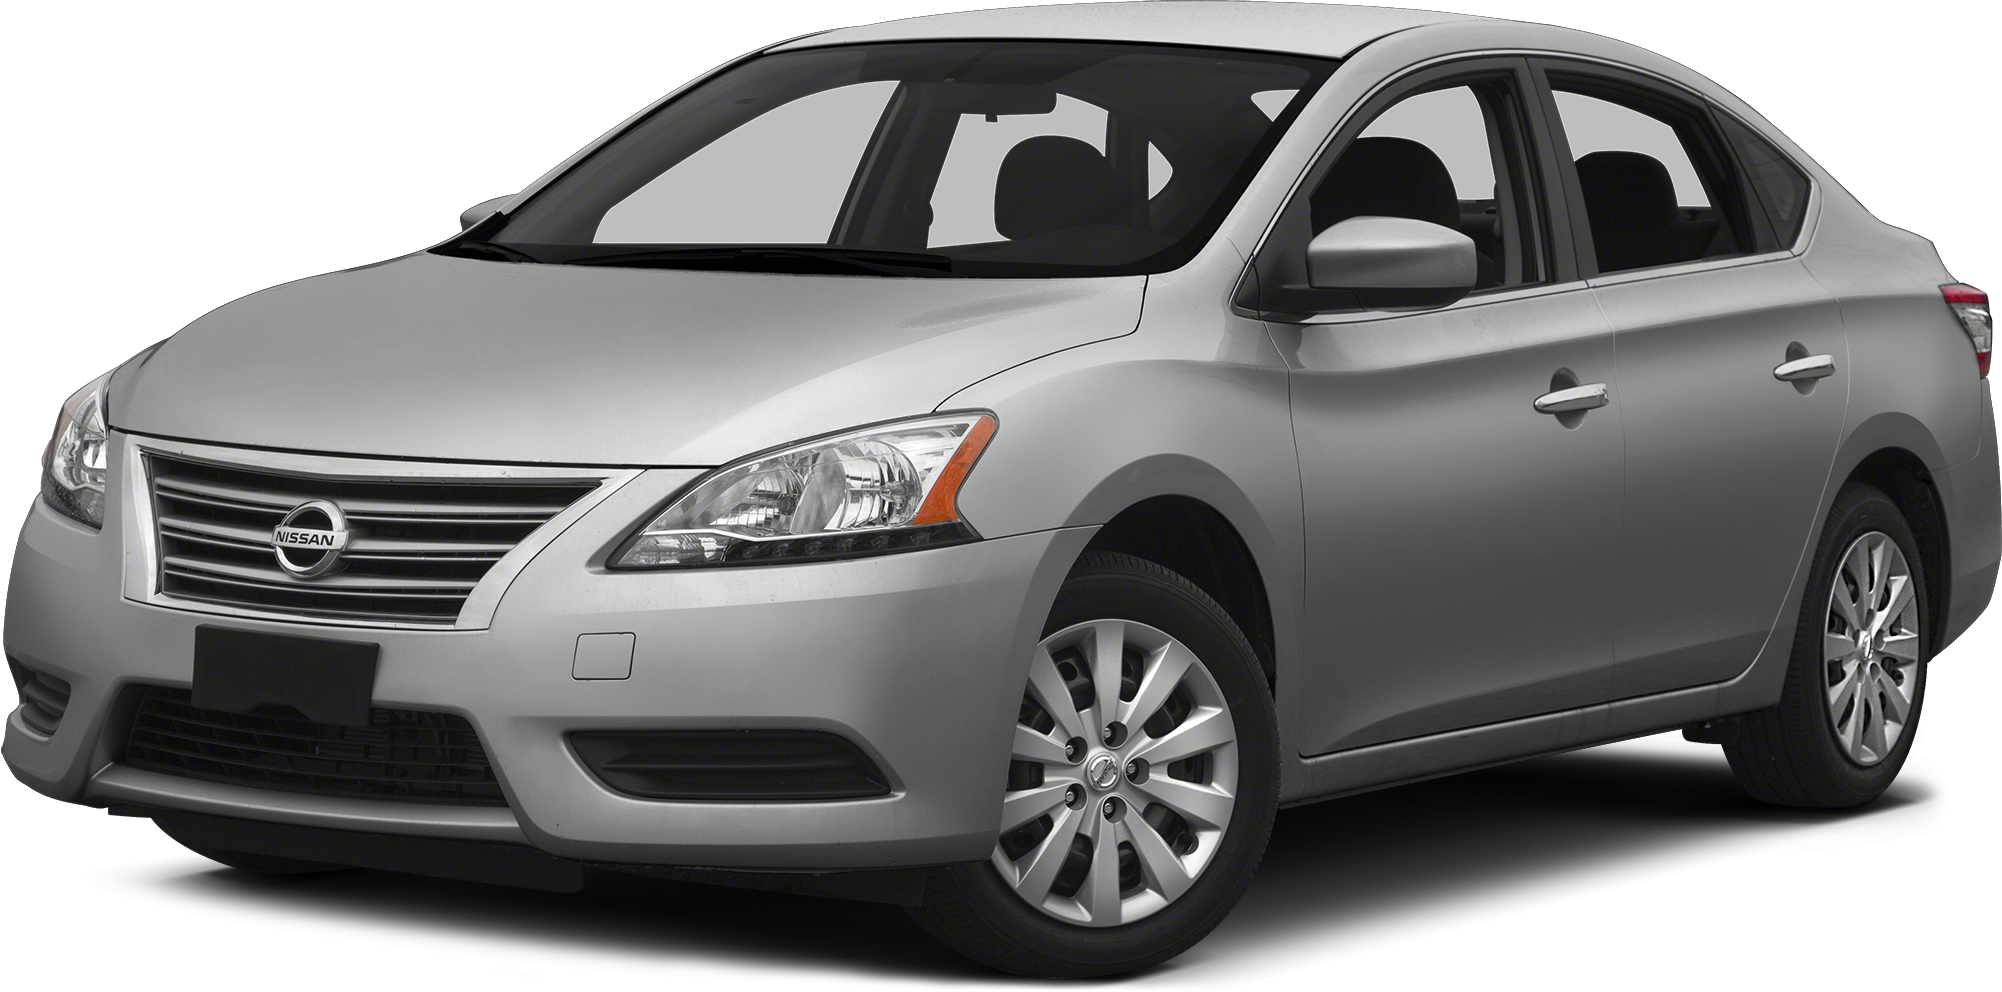 2014 nissan sentra 4dr sdn i4 cvt sv gladstone or 13836156. Black Bedroom Furniture Sets. Home Design Ideas